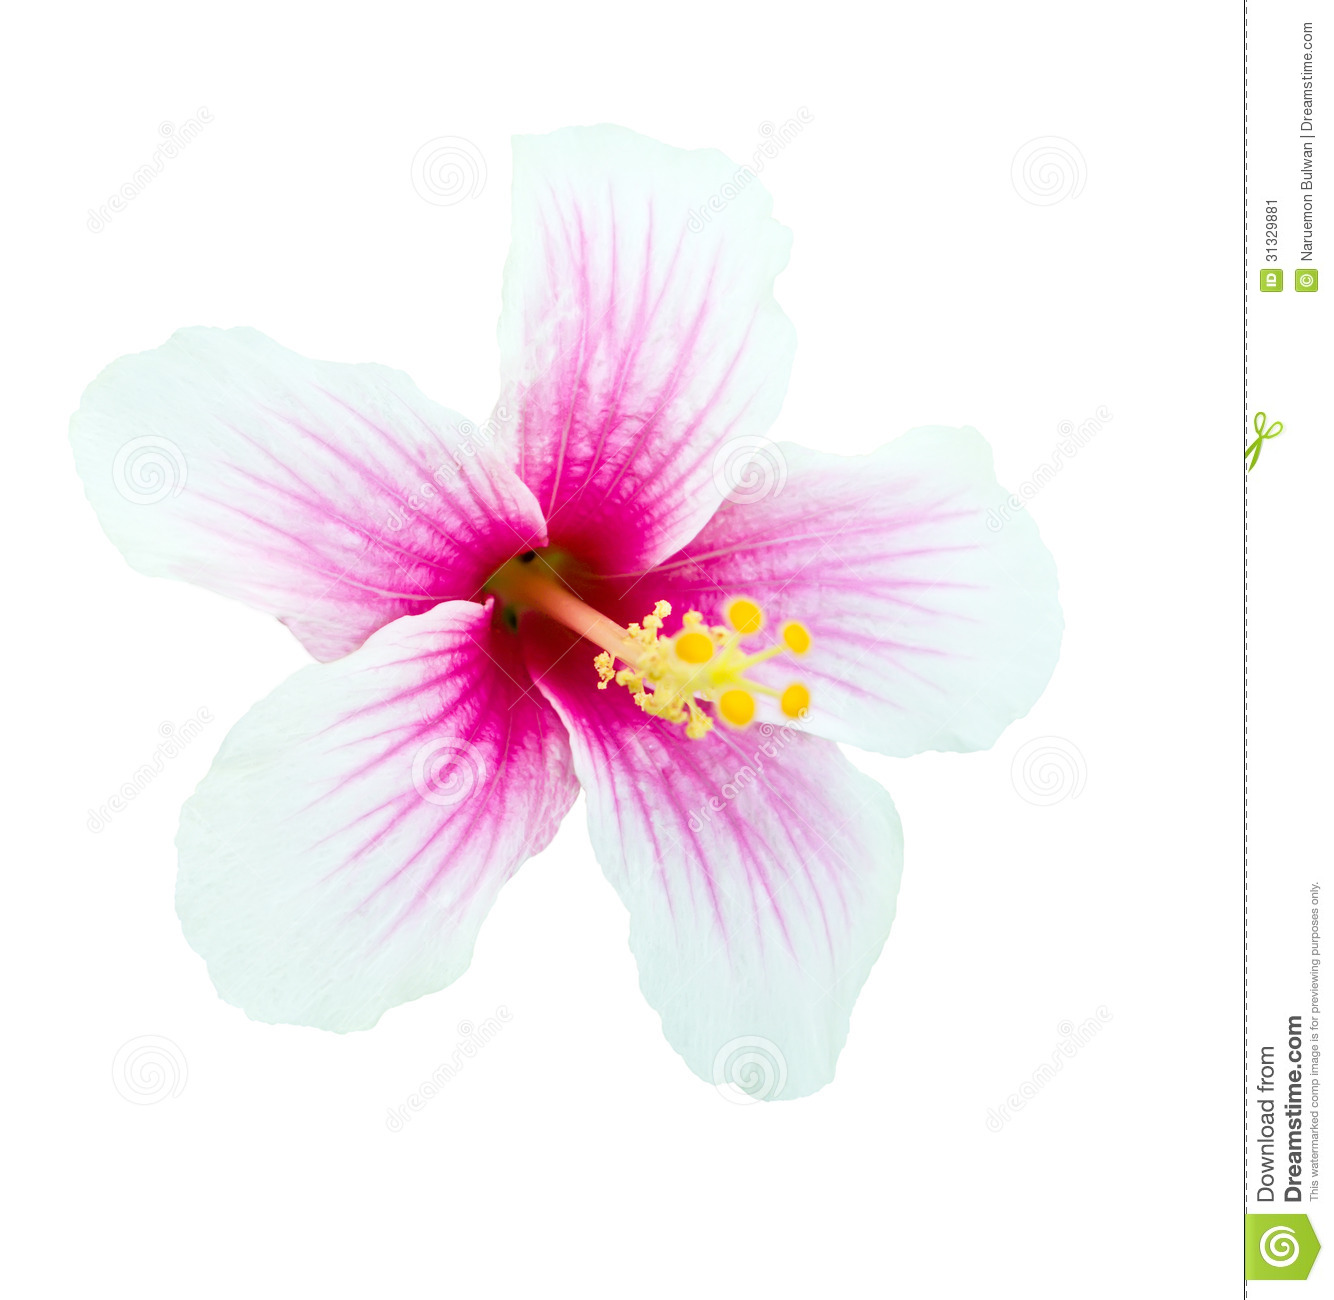 Pink and white hibiscus flower isolated stock image image of pink and white hibiscus flower isolated mightylinksfo